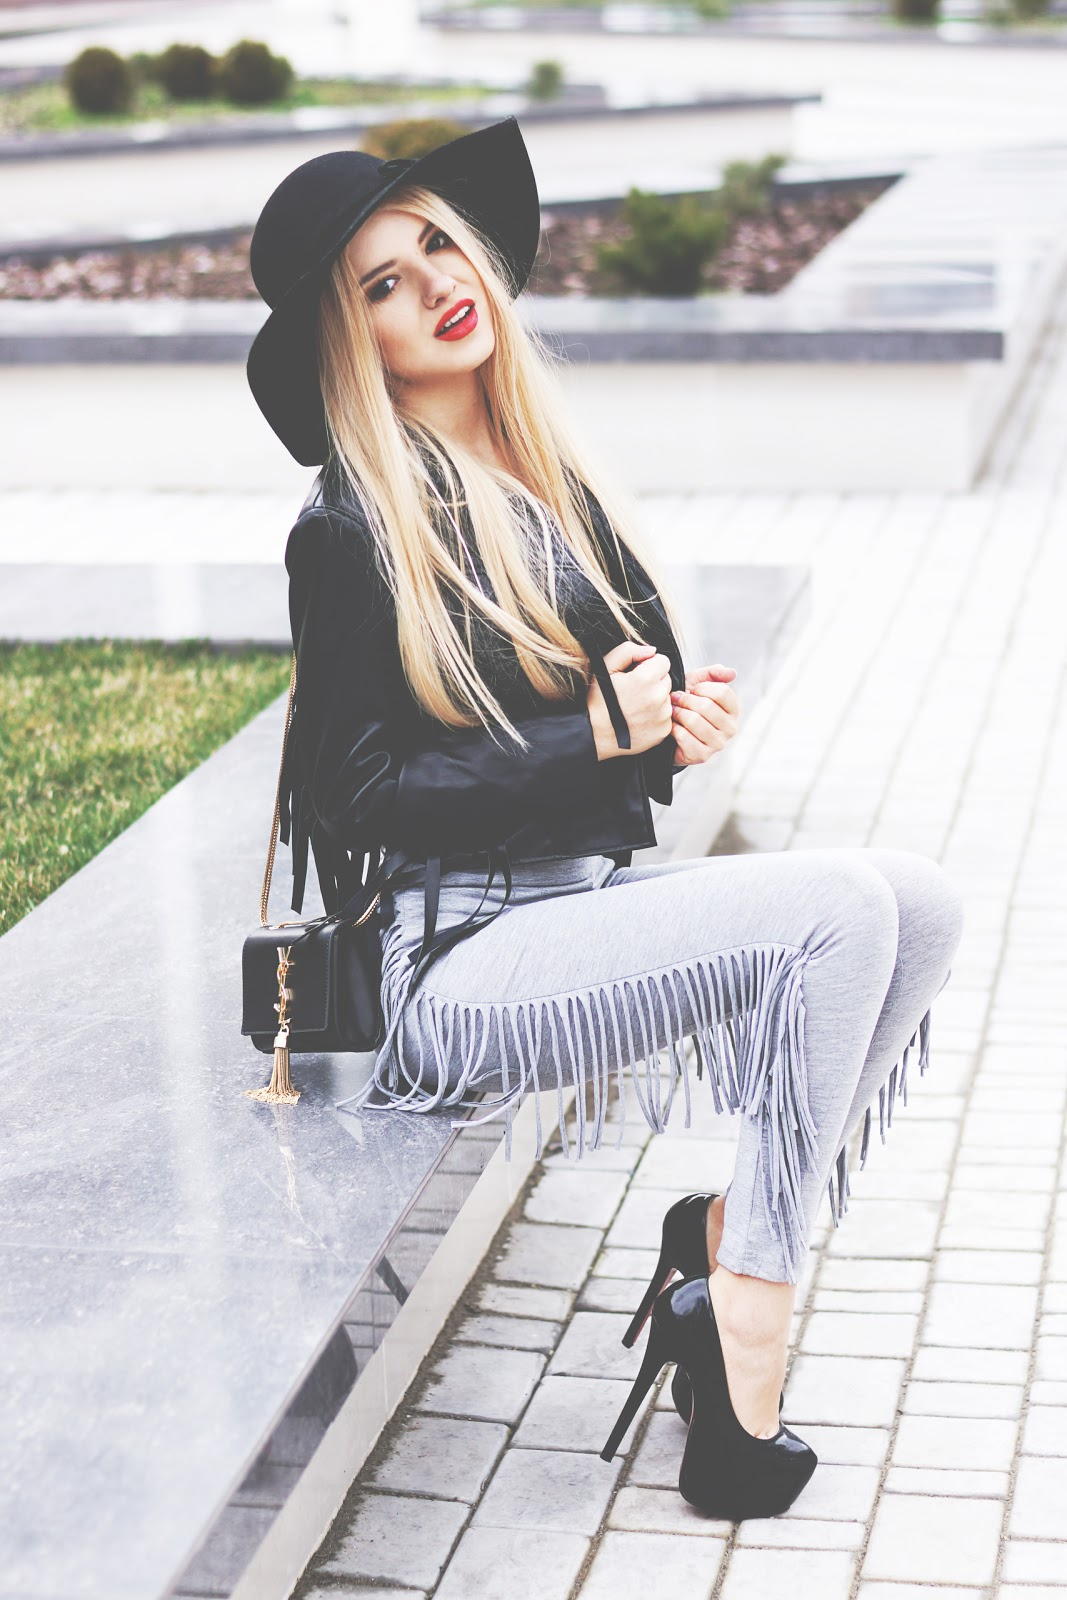 style moi clothes, fringed jacket, fringed leggins, fashion blogger